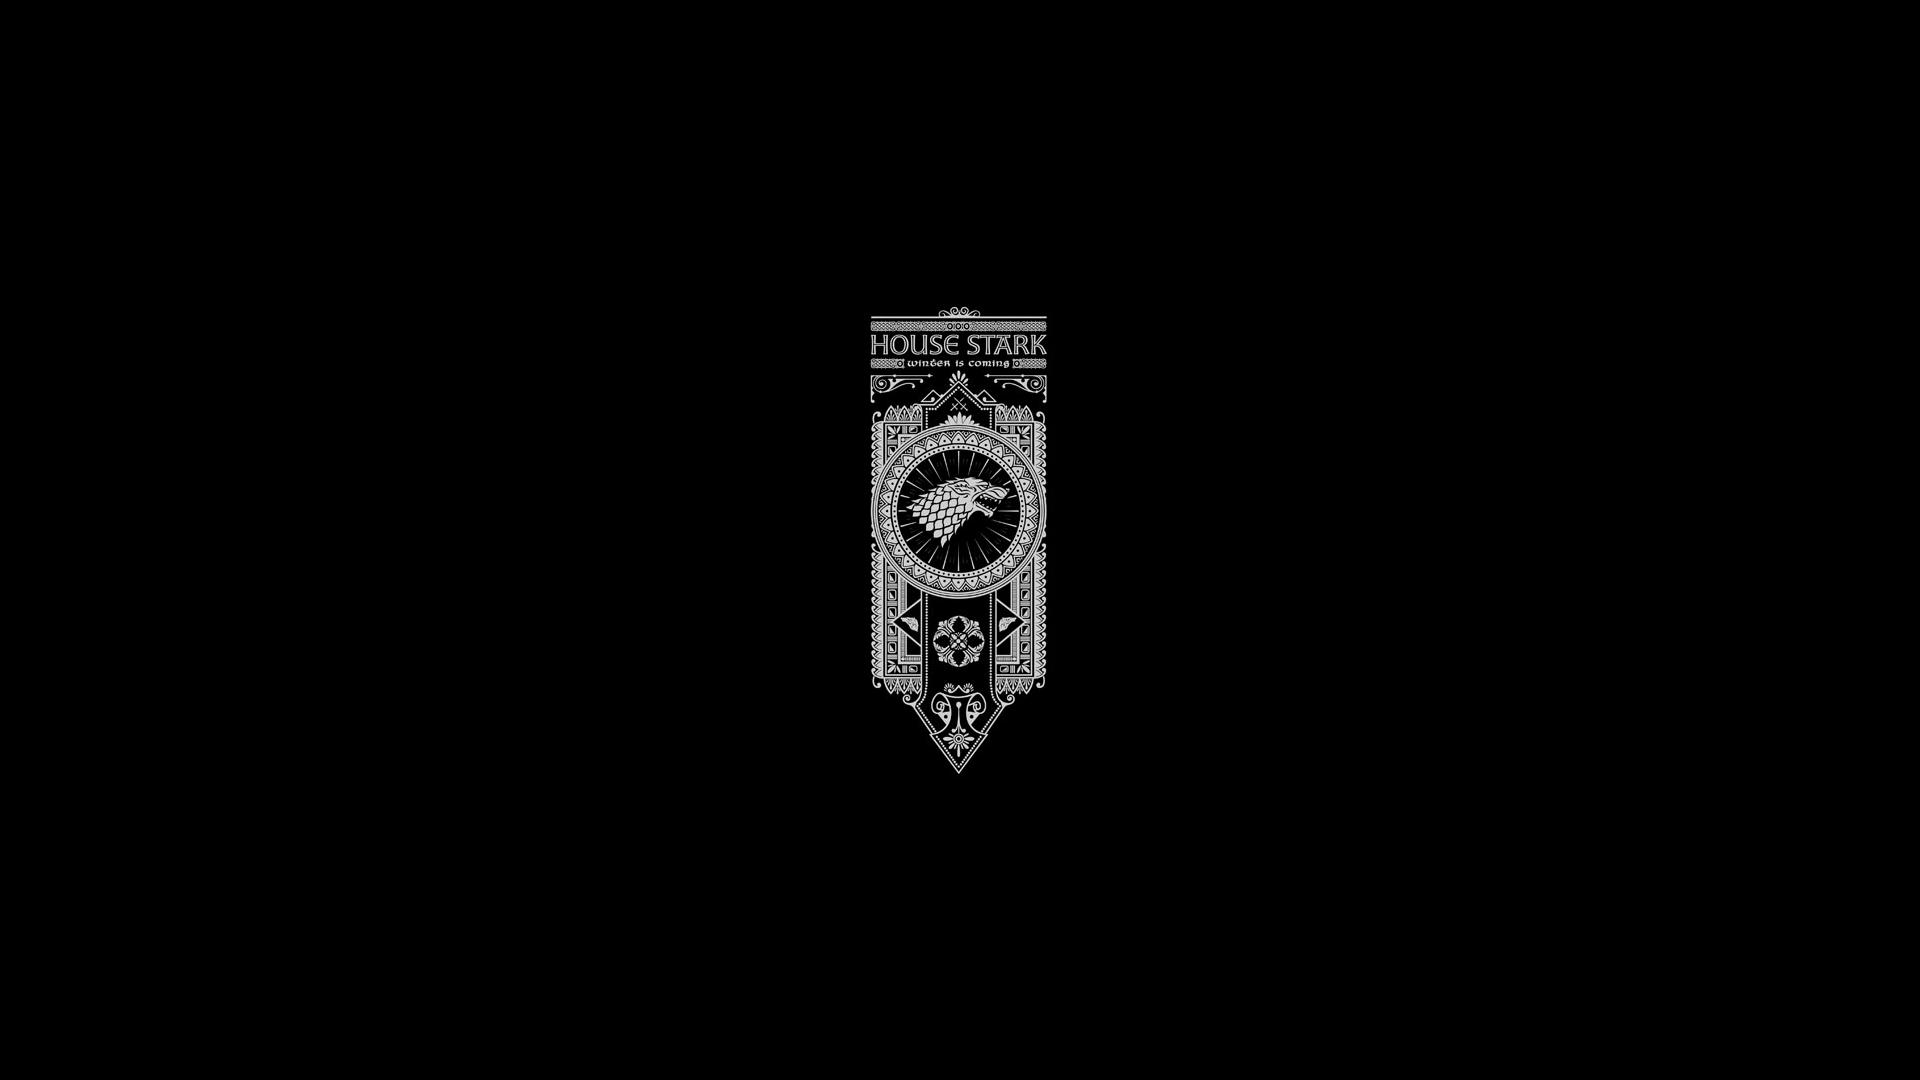 Game of Thrones Song of Ice and Fire Stark Minimal Black wallpaper 1920x1080